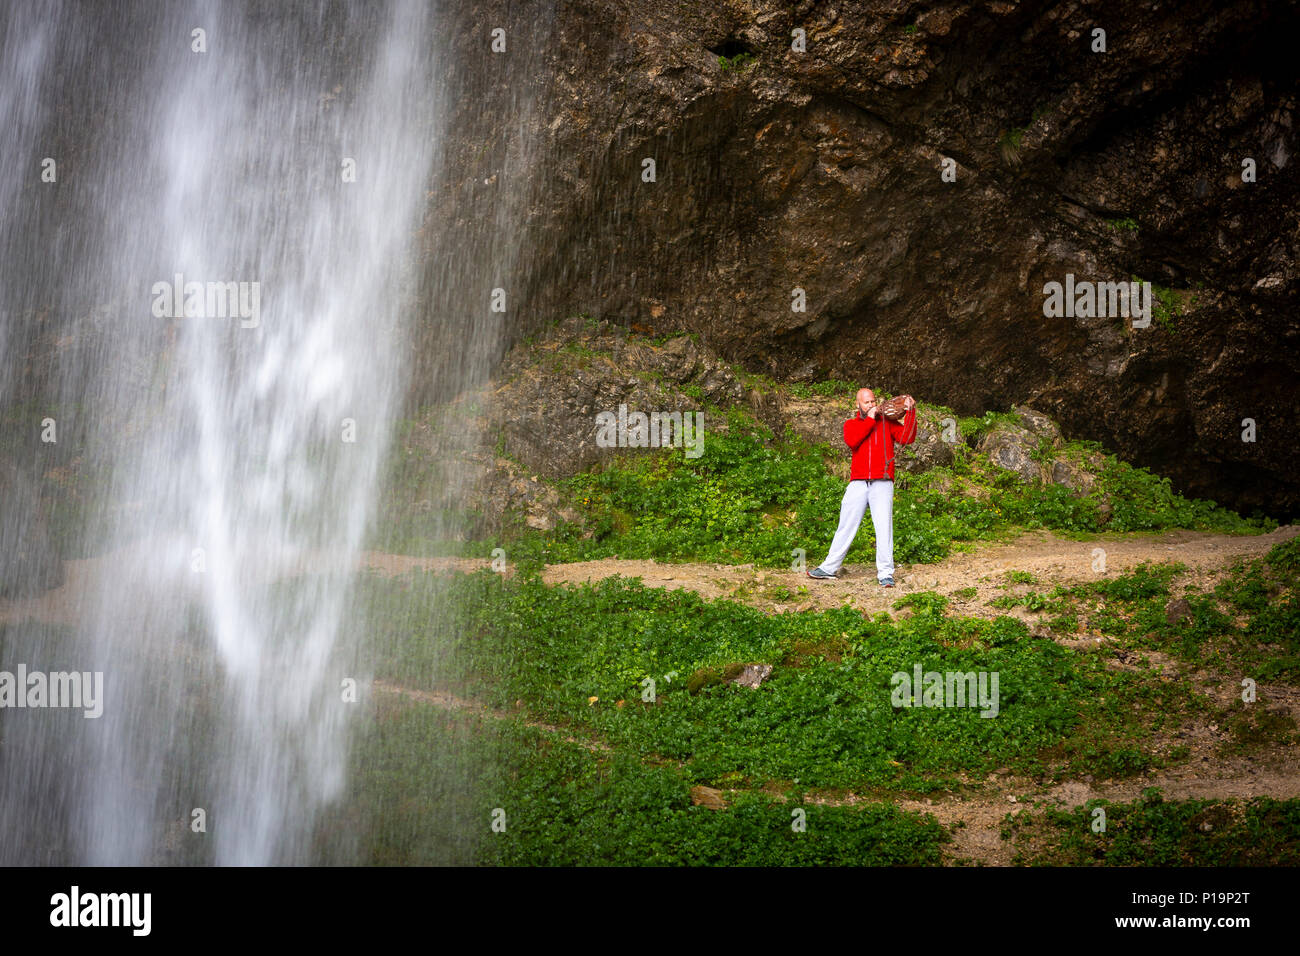 Man in casual wear blows the conch shell behind giant watefall - Stock Image